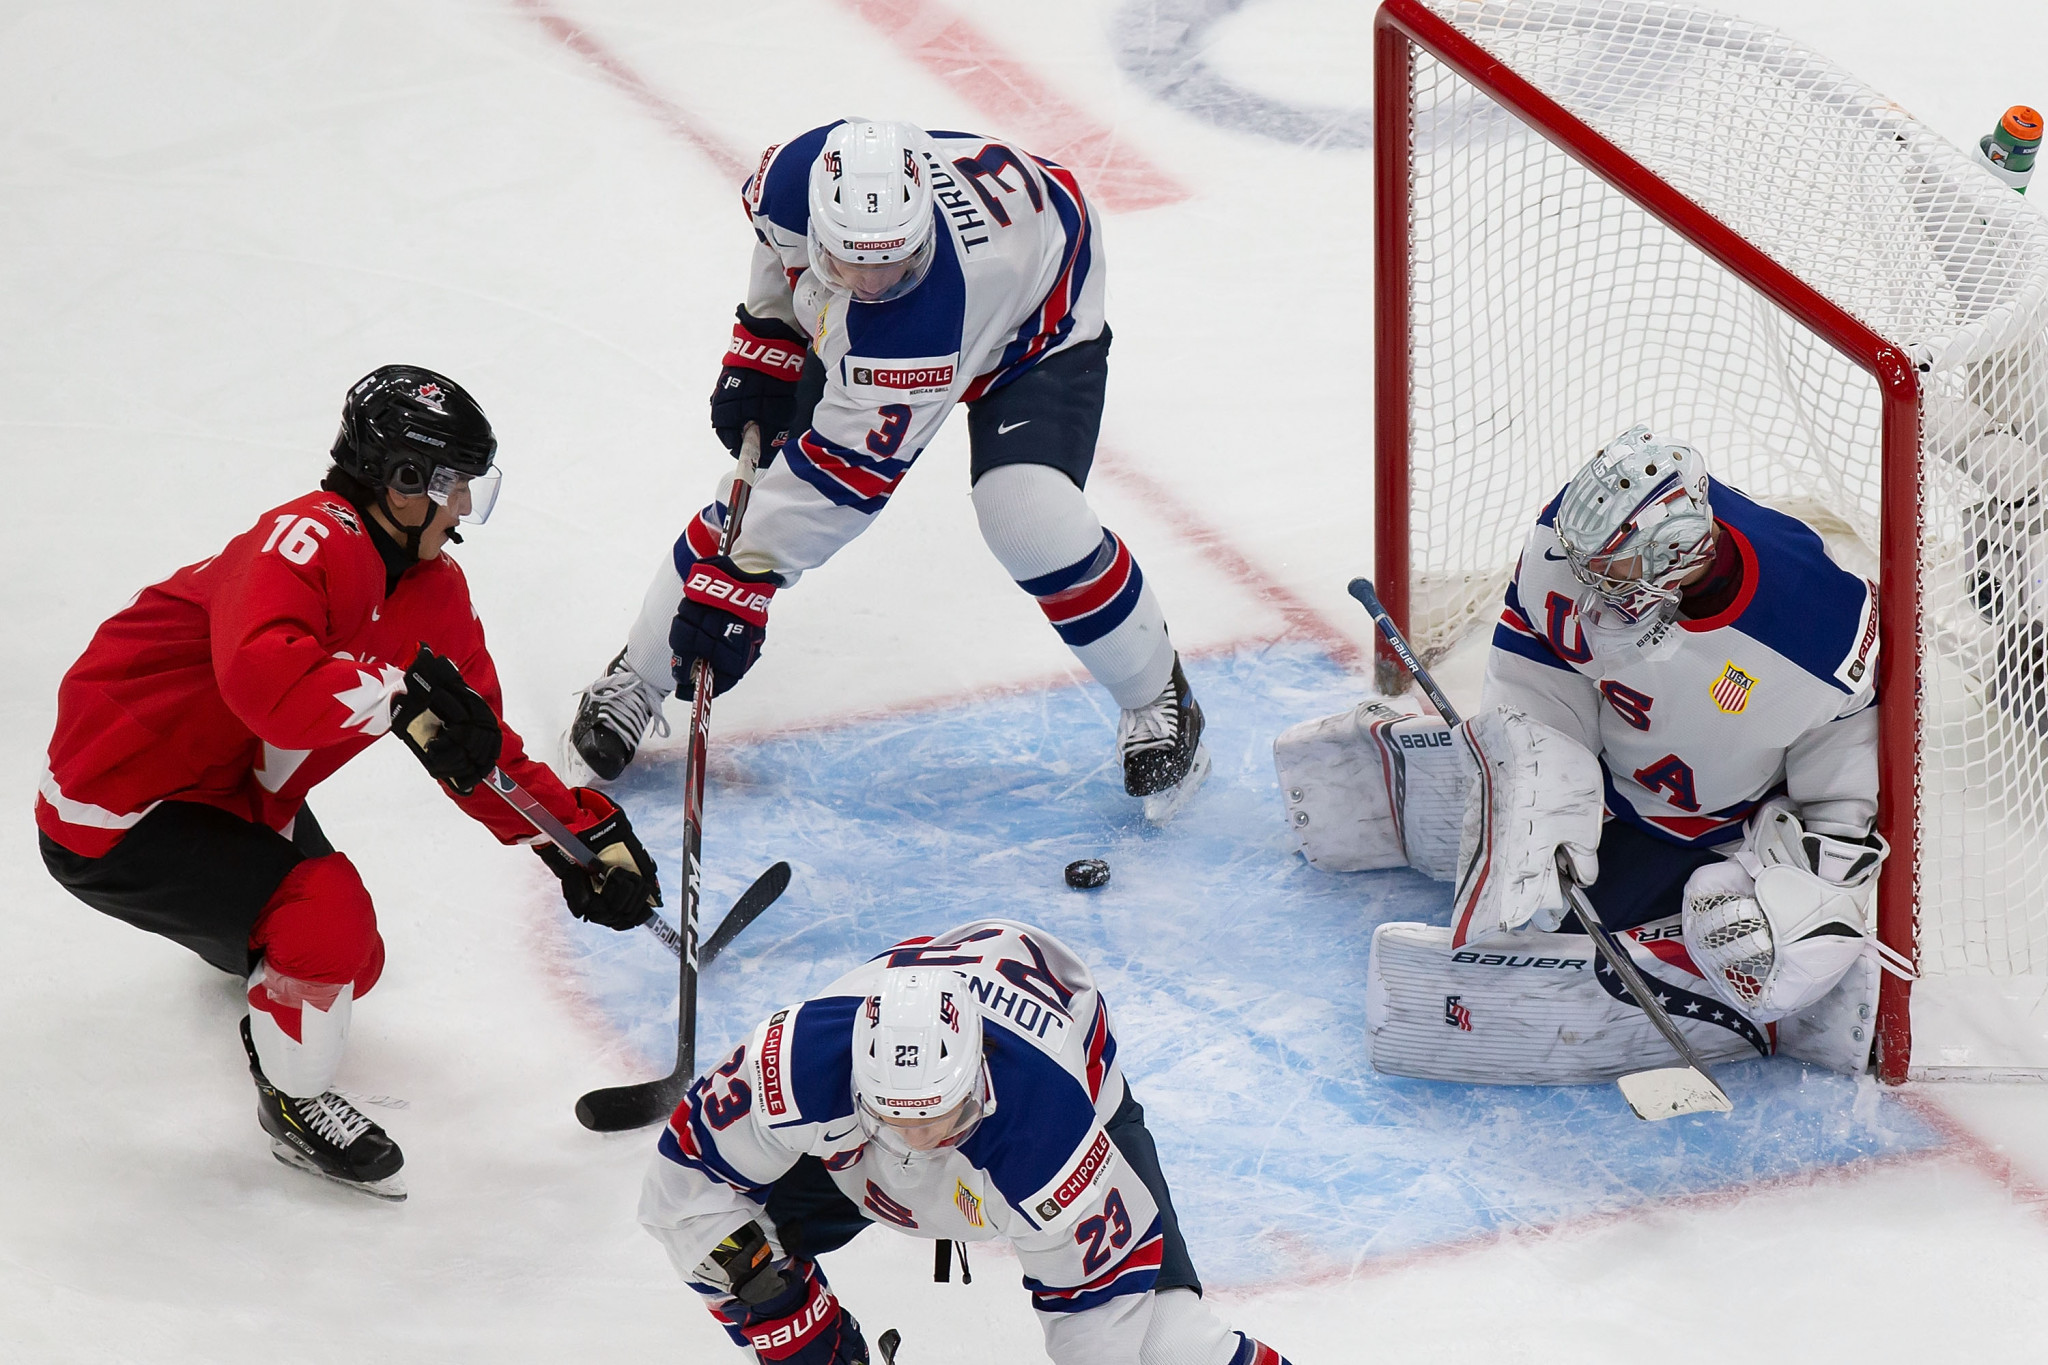 Despite seven positive COVID cases in the run-up to competition, the IIHF World Junior Championship in Edmonton concluded without further positive tests, with United States beating the hosts in the final ©Getty Images